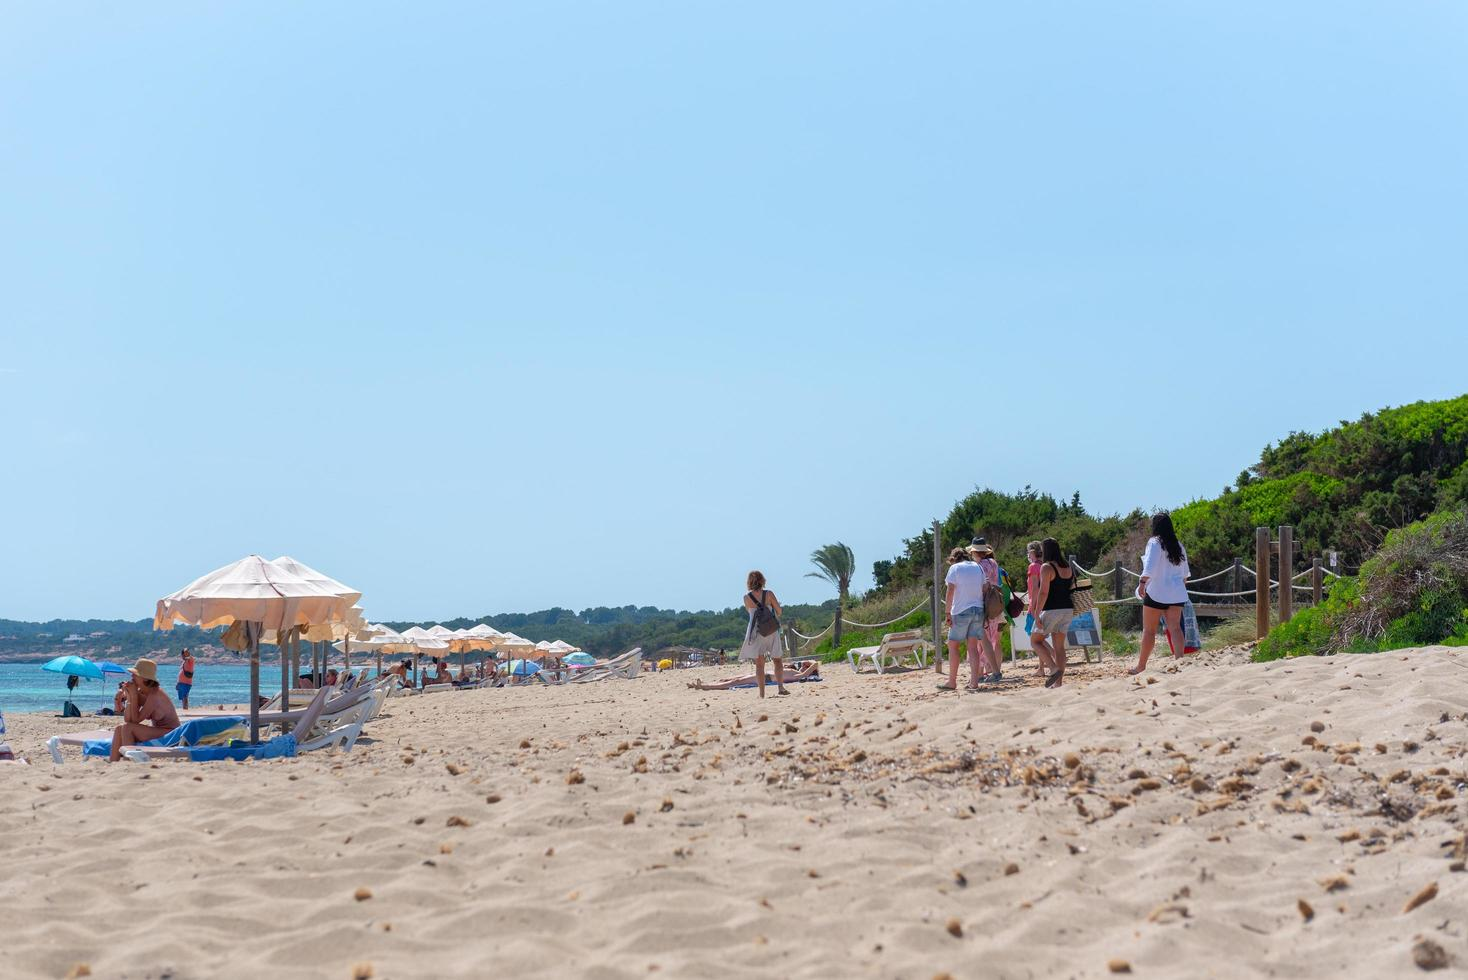 People on Migjorn beach in Formentera in Spain in Times of COvid 19 photo